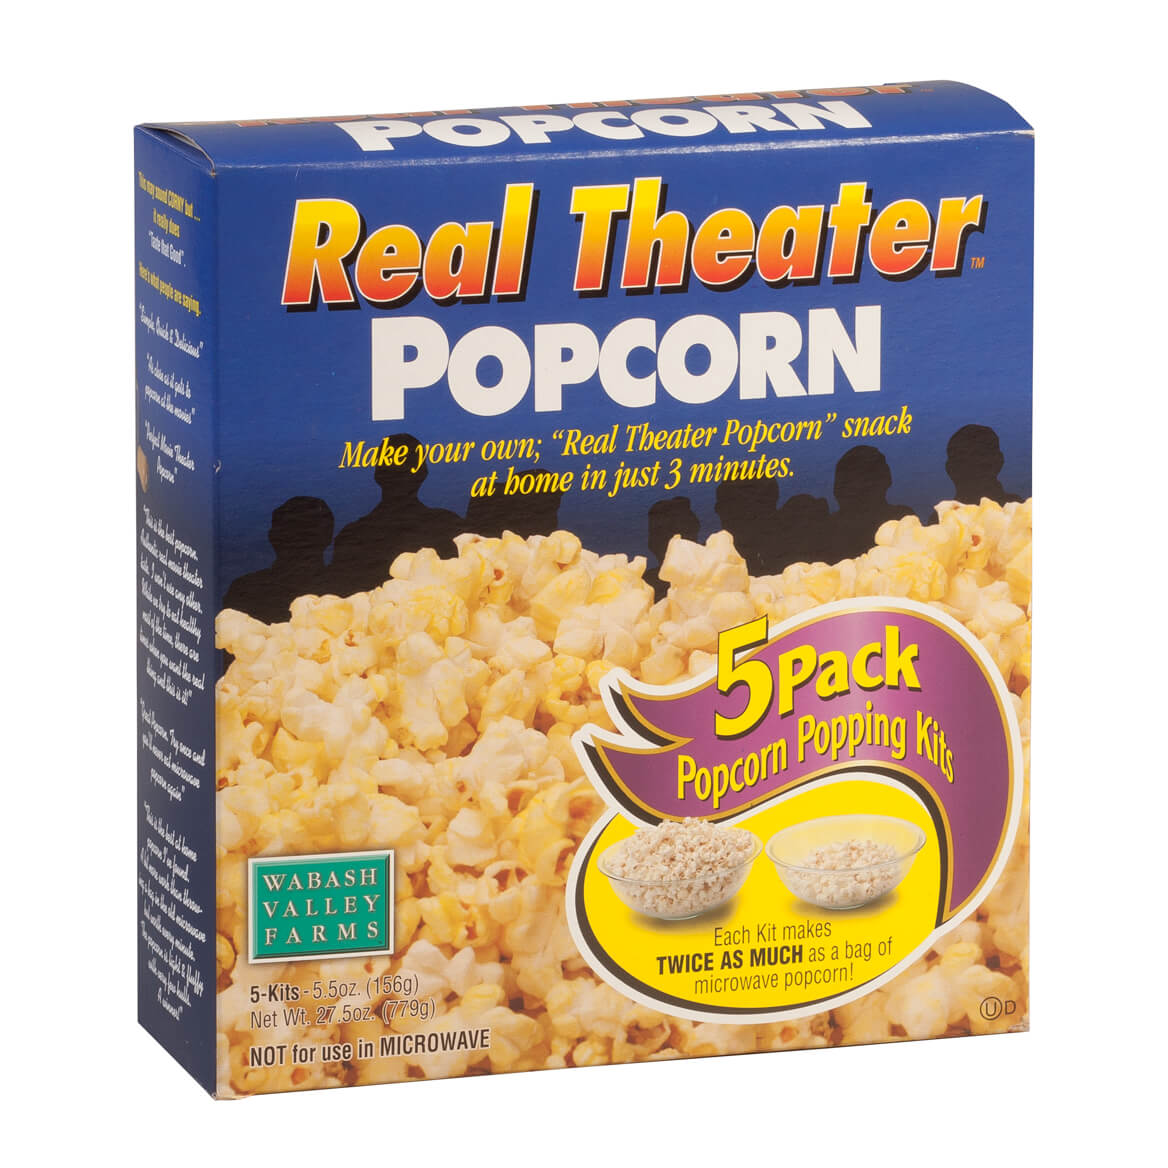 Real Theater™ Popcorn 5 pack